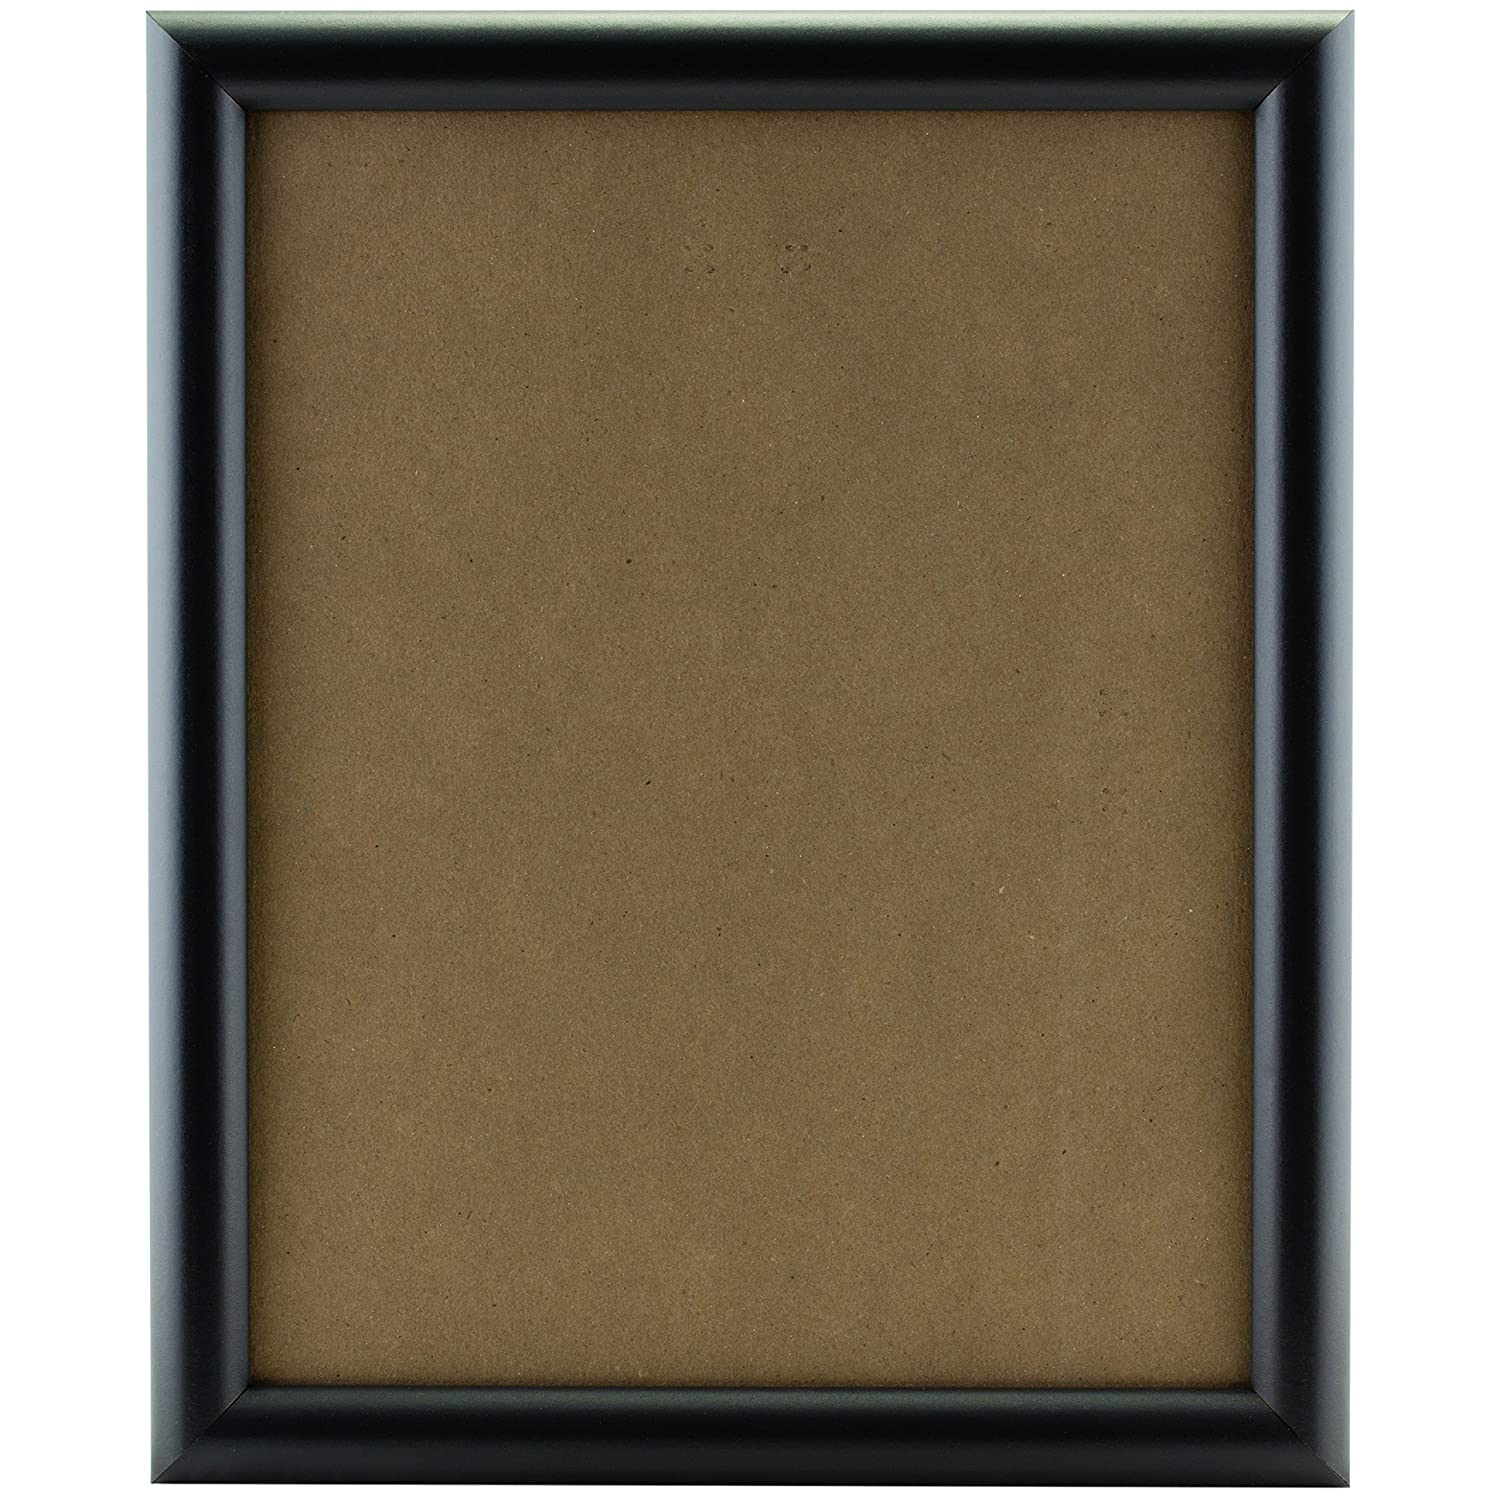 Craig Frames fw2bk 22 by 28-Inch Picture Frame, Smooth Finish, 0.765-Inch Wide, Black Craig Frames Inc.